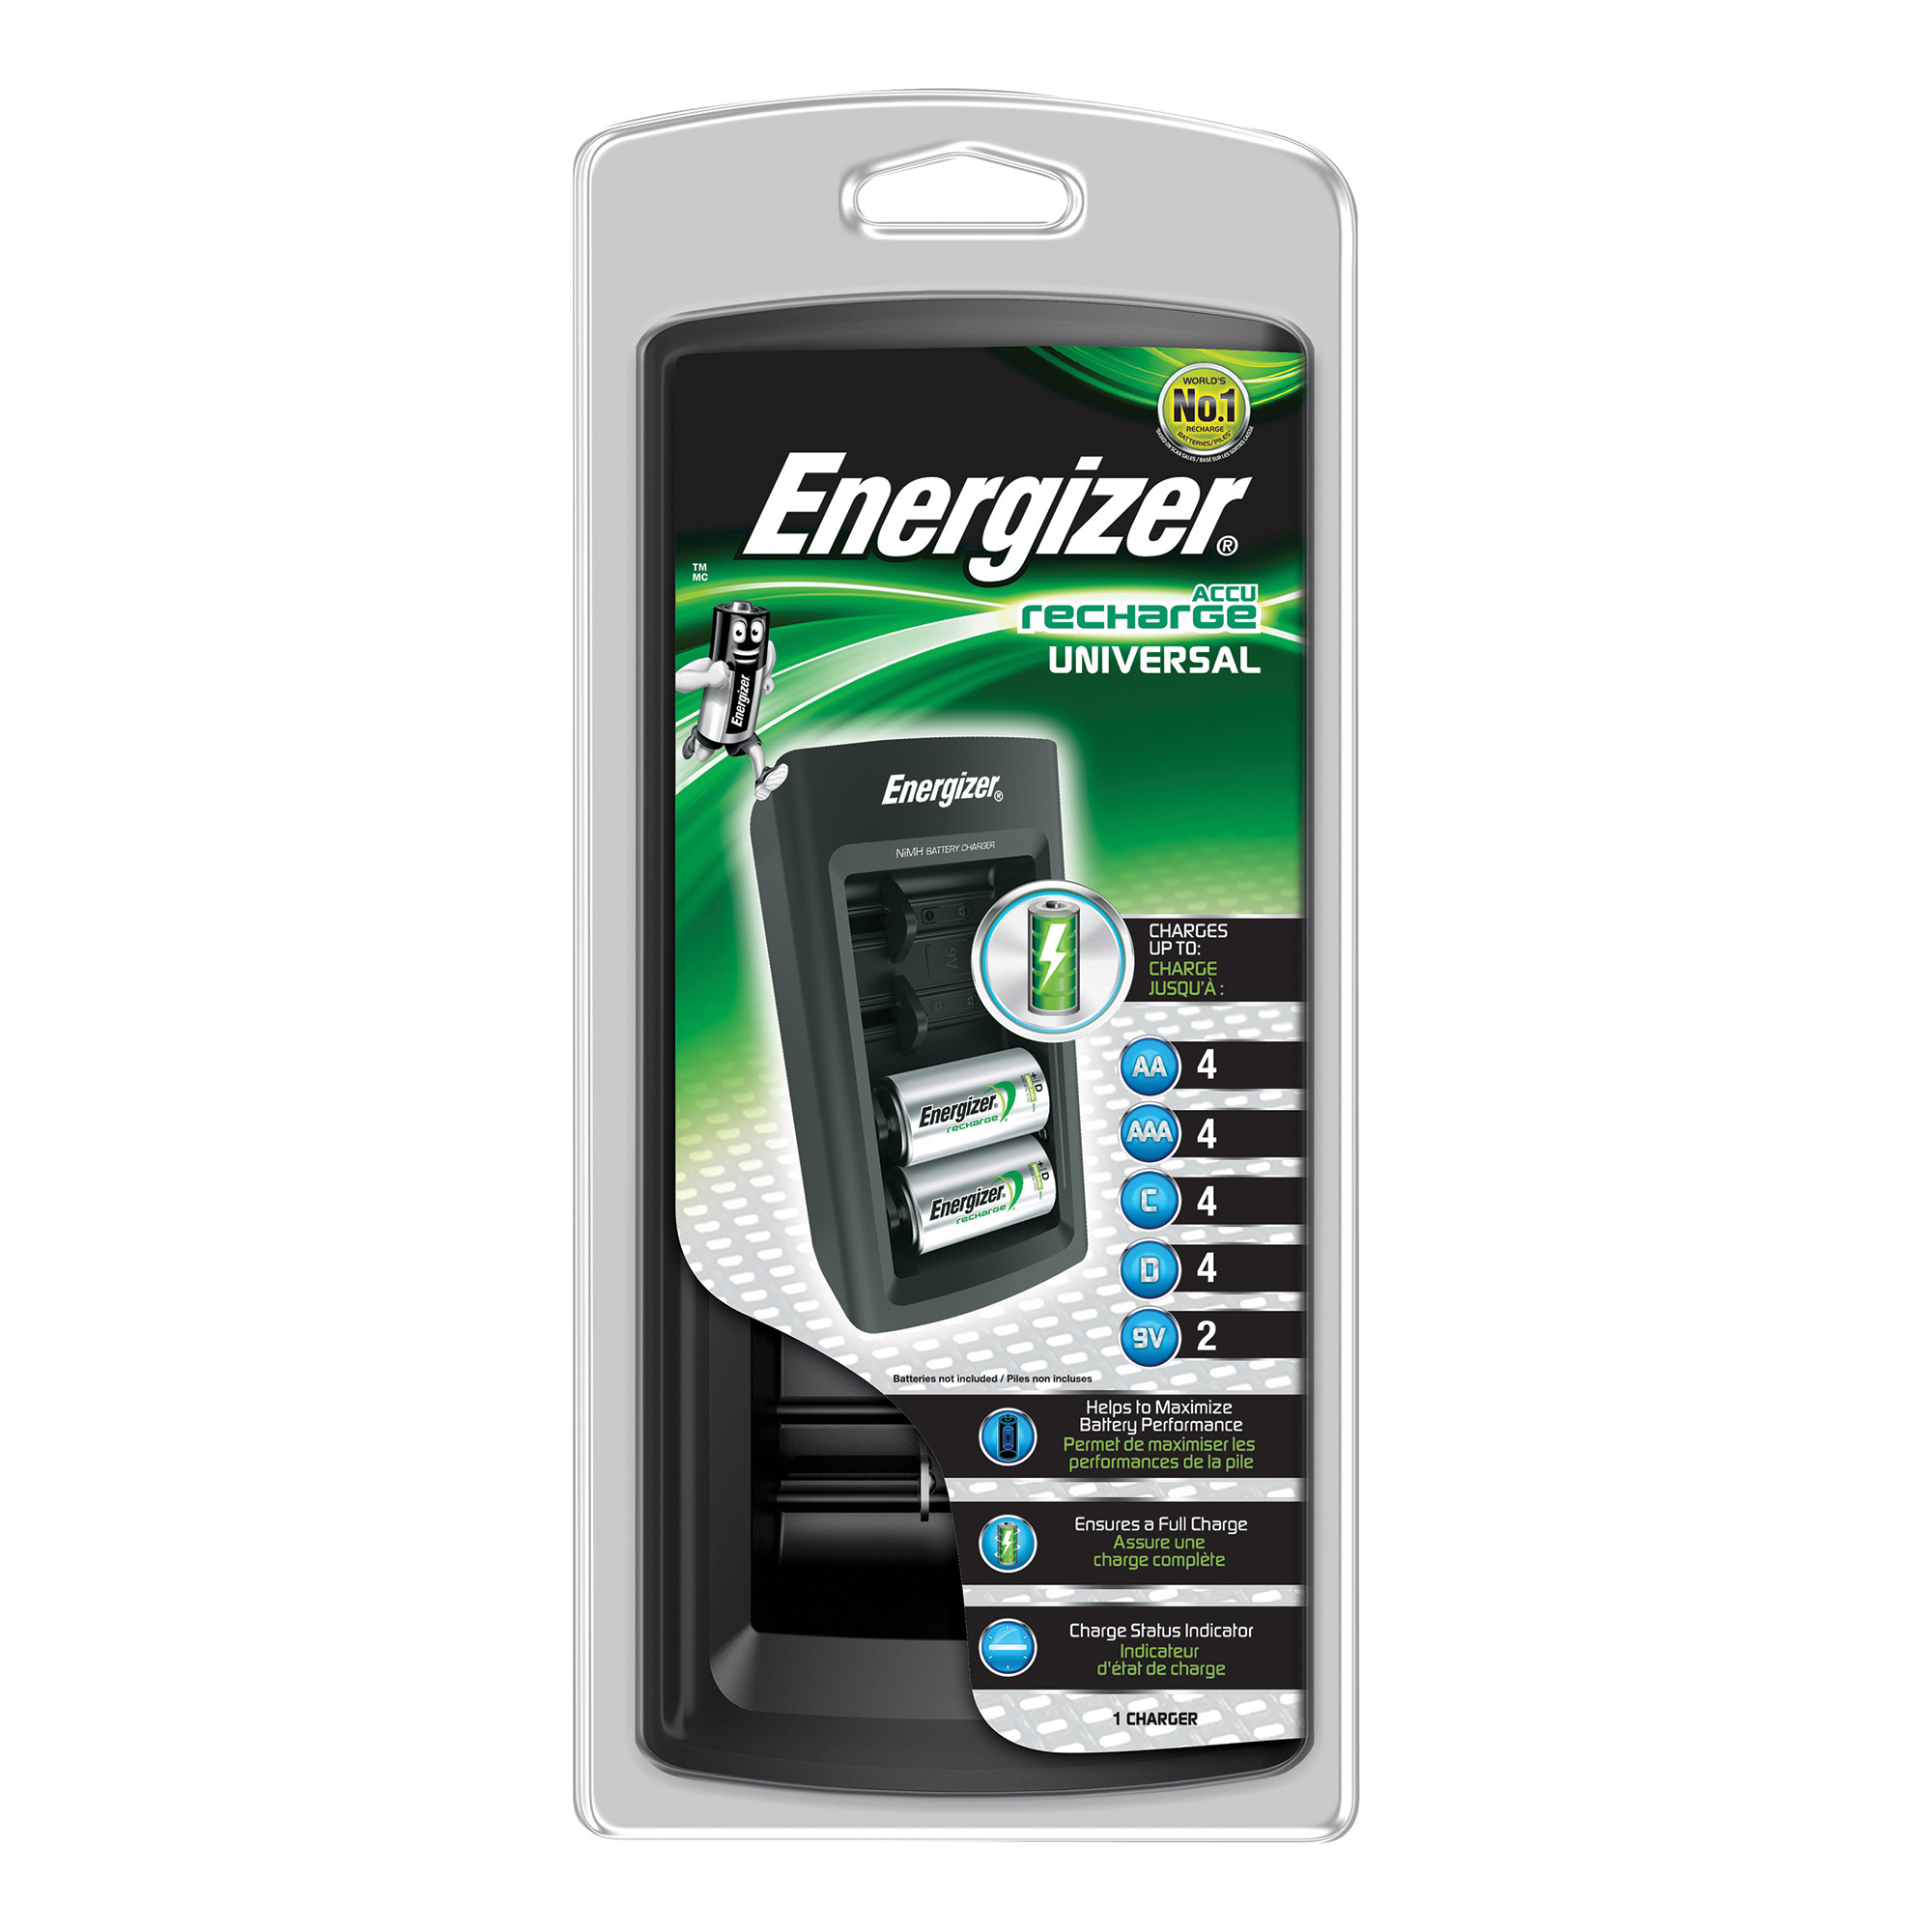 Image for Energizer Universal Battery Charger CHEUF with Smart LED 2-5Hrs Time for AAA AA C D 9V Ref 629874